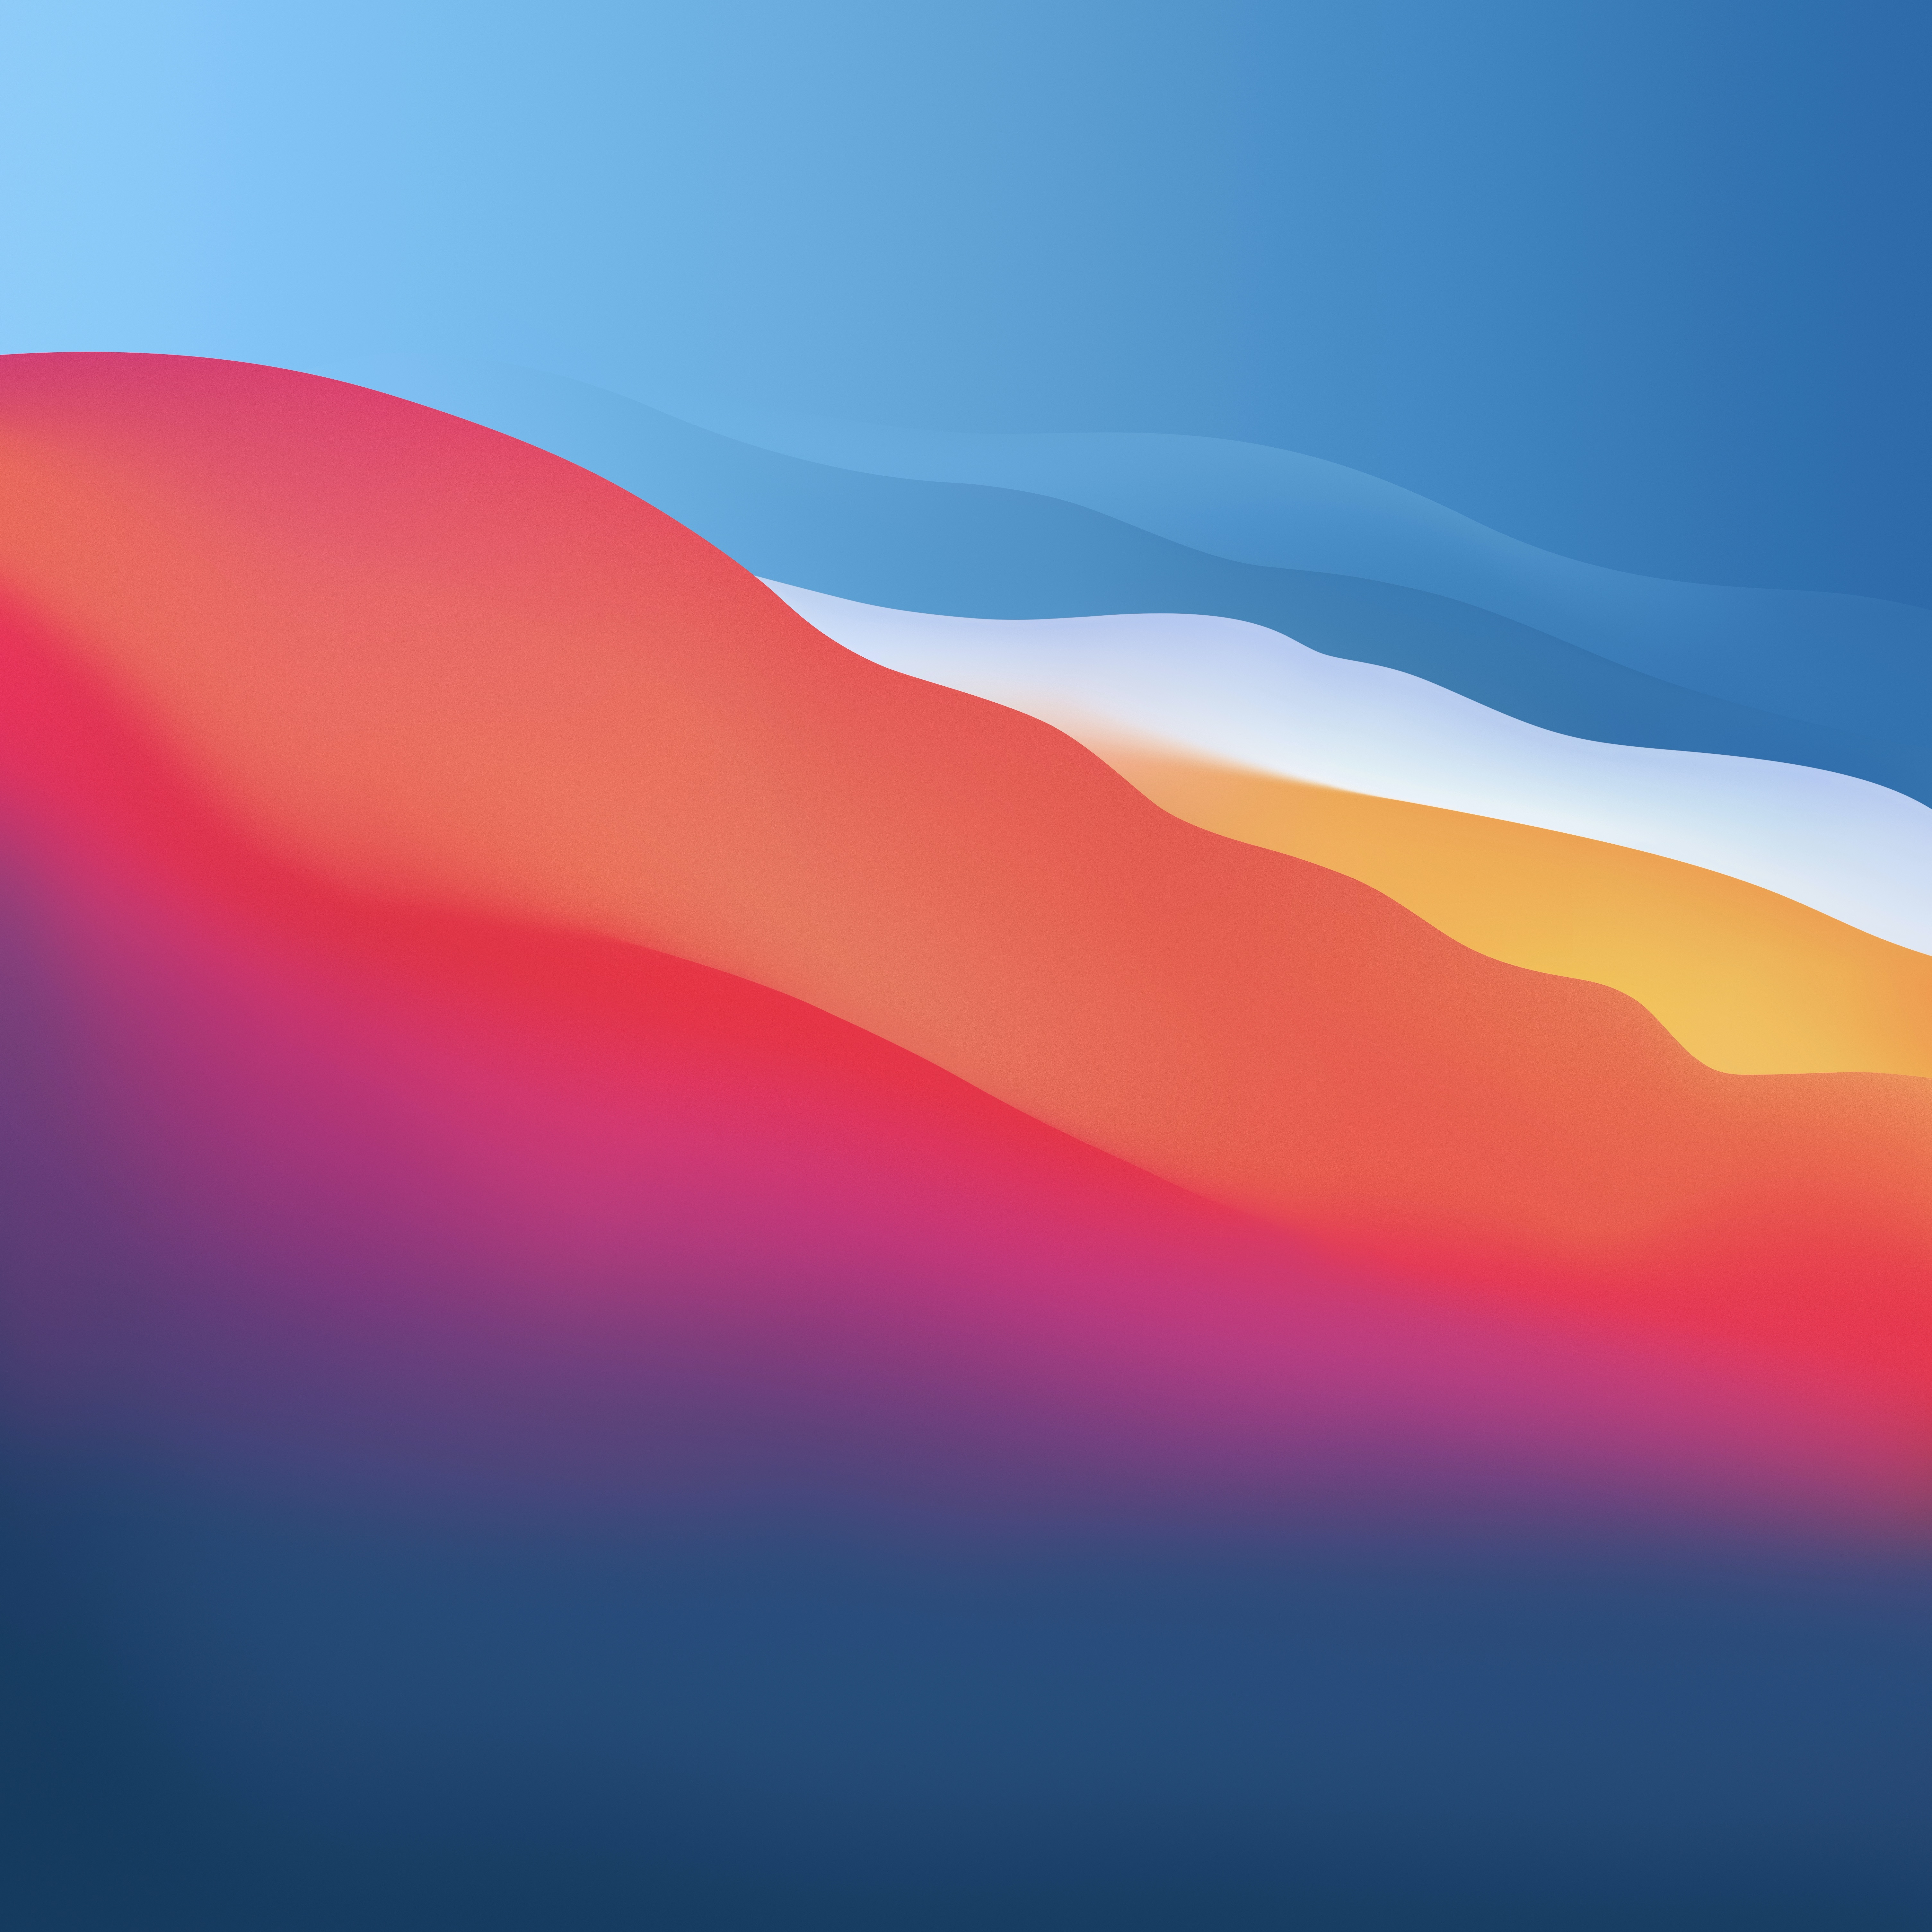 Macos Big Sur Wallpapers For Desktop Iphone And Ipad